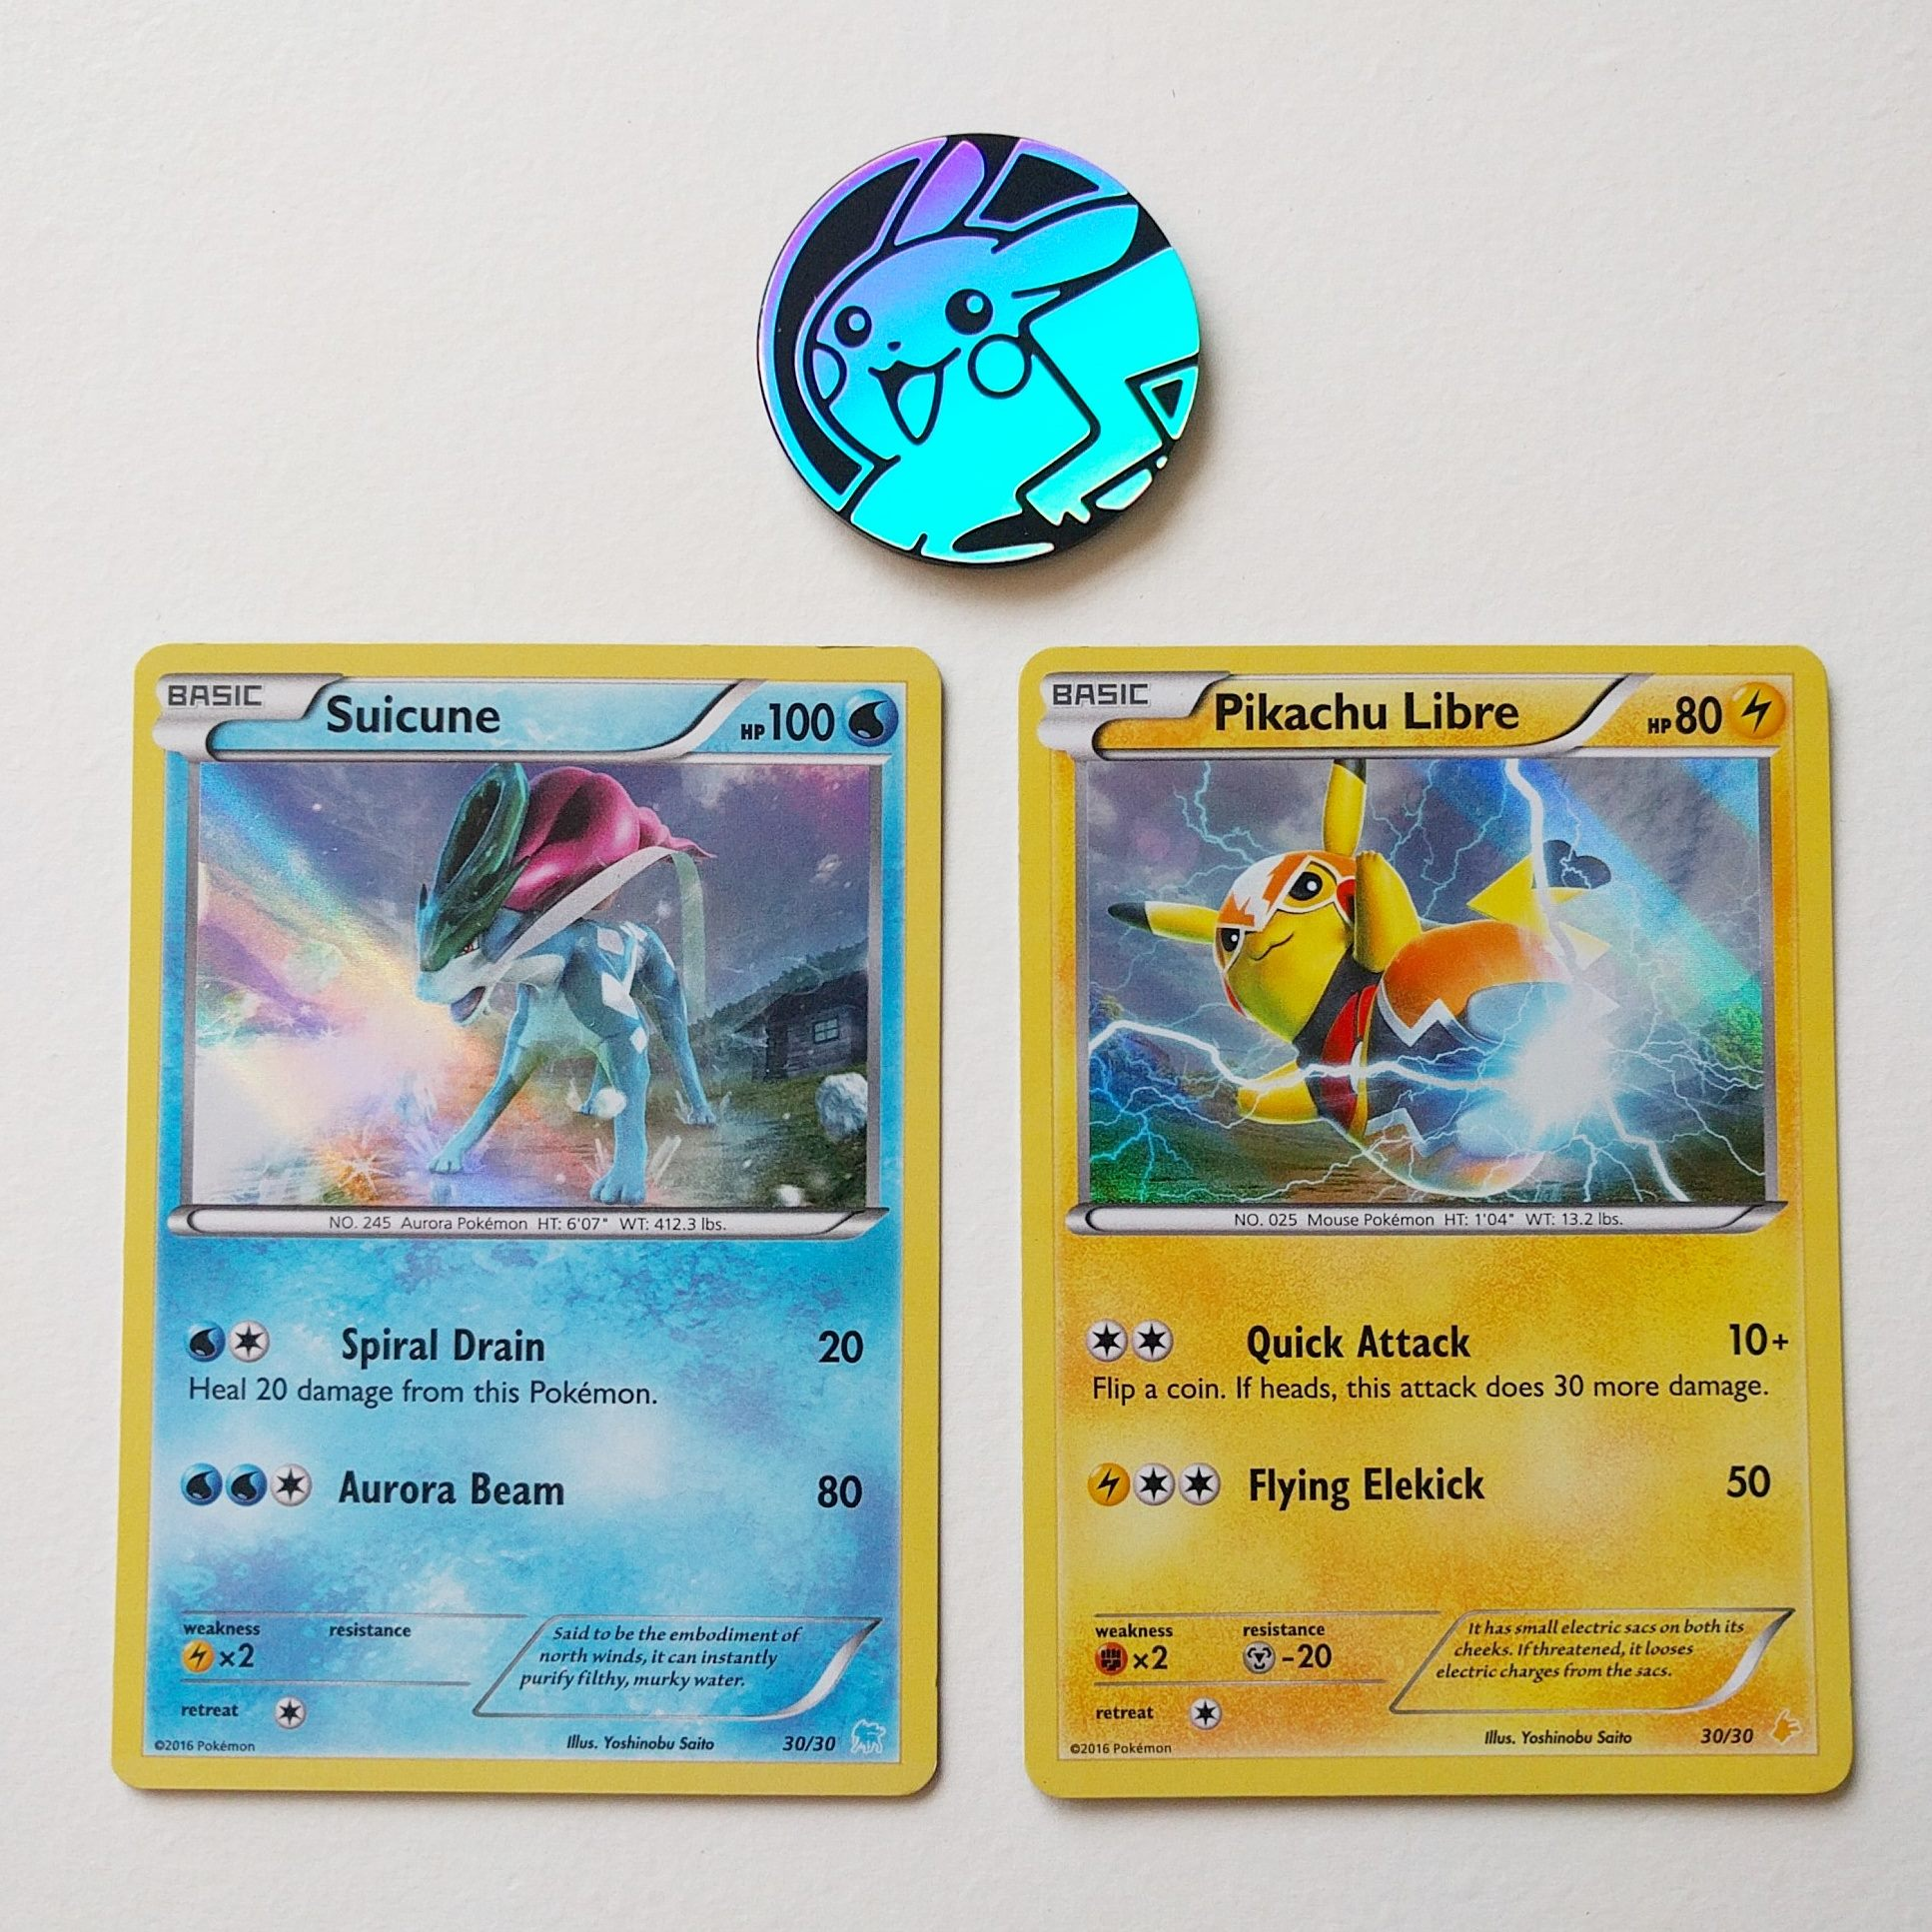 Xy Trainer Kit Pikachu Libre And Suicune Product Images